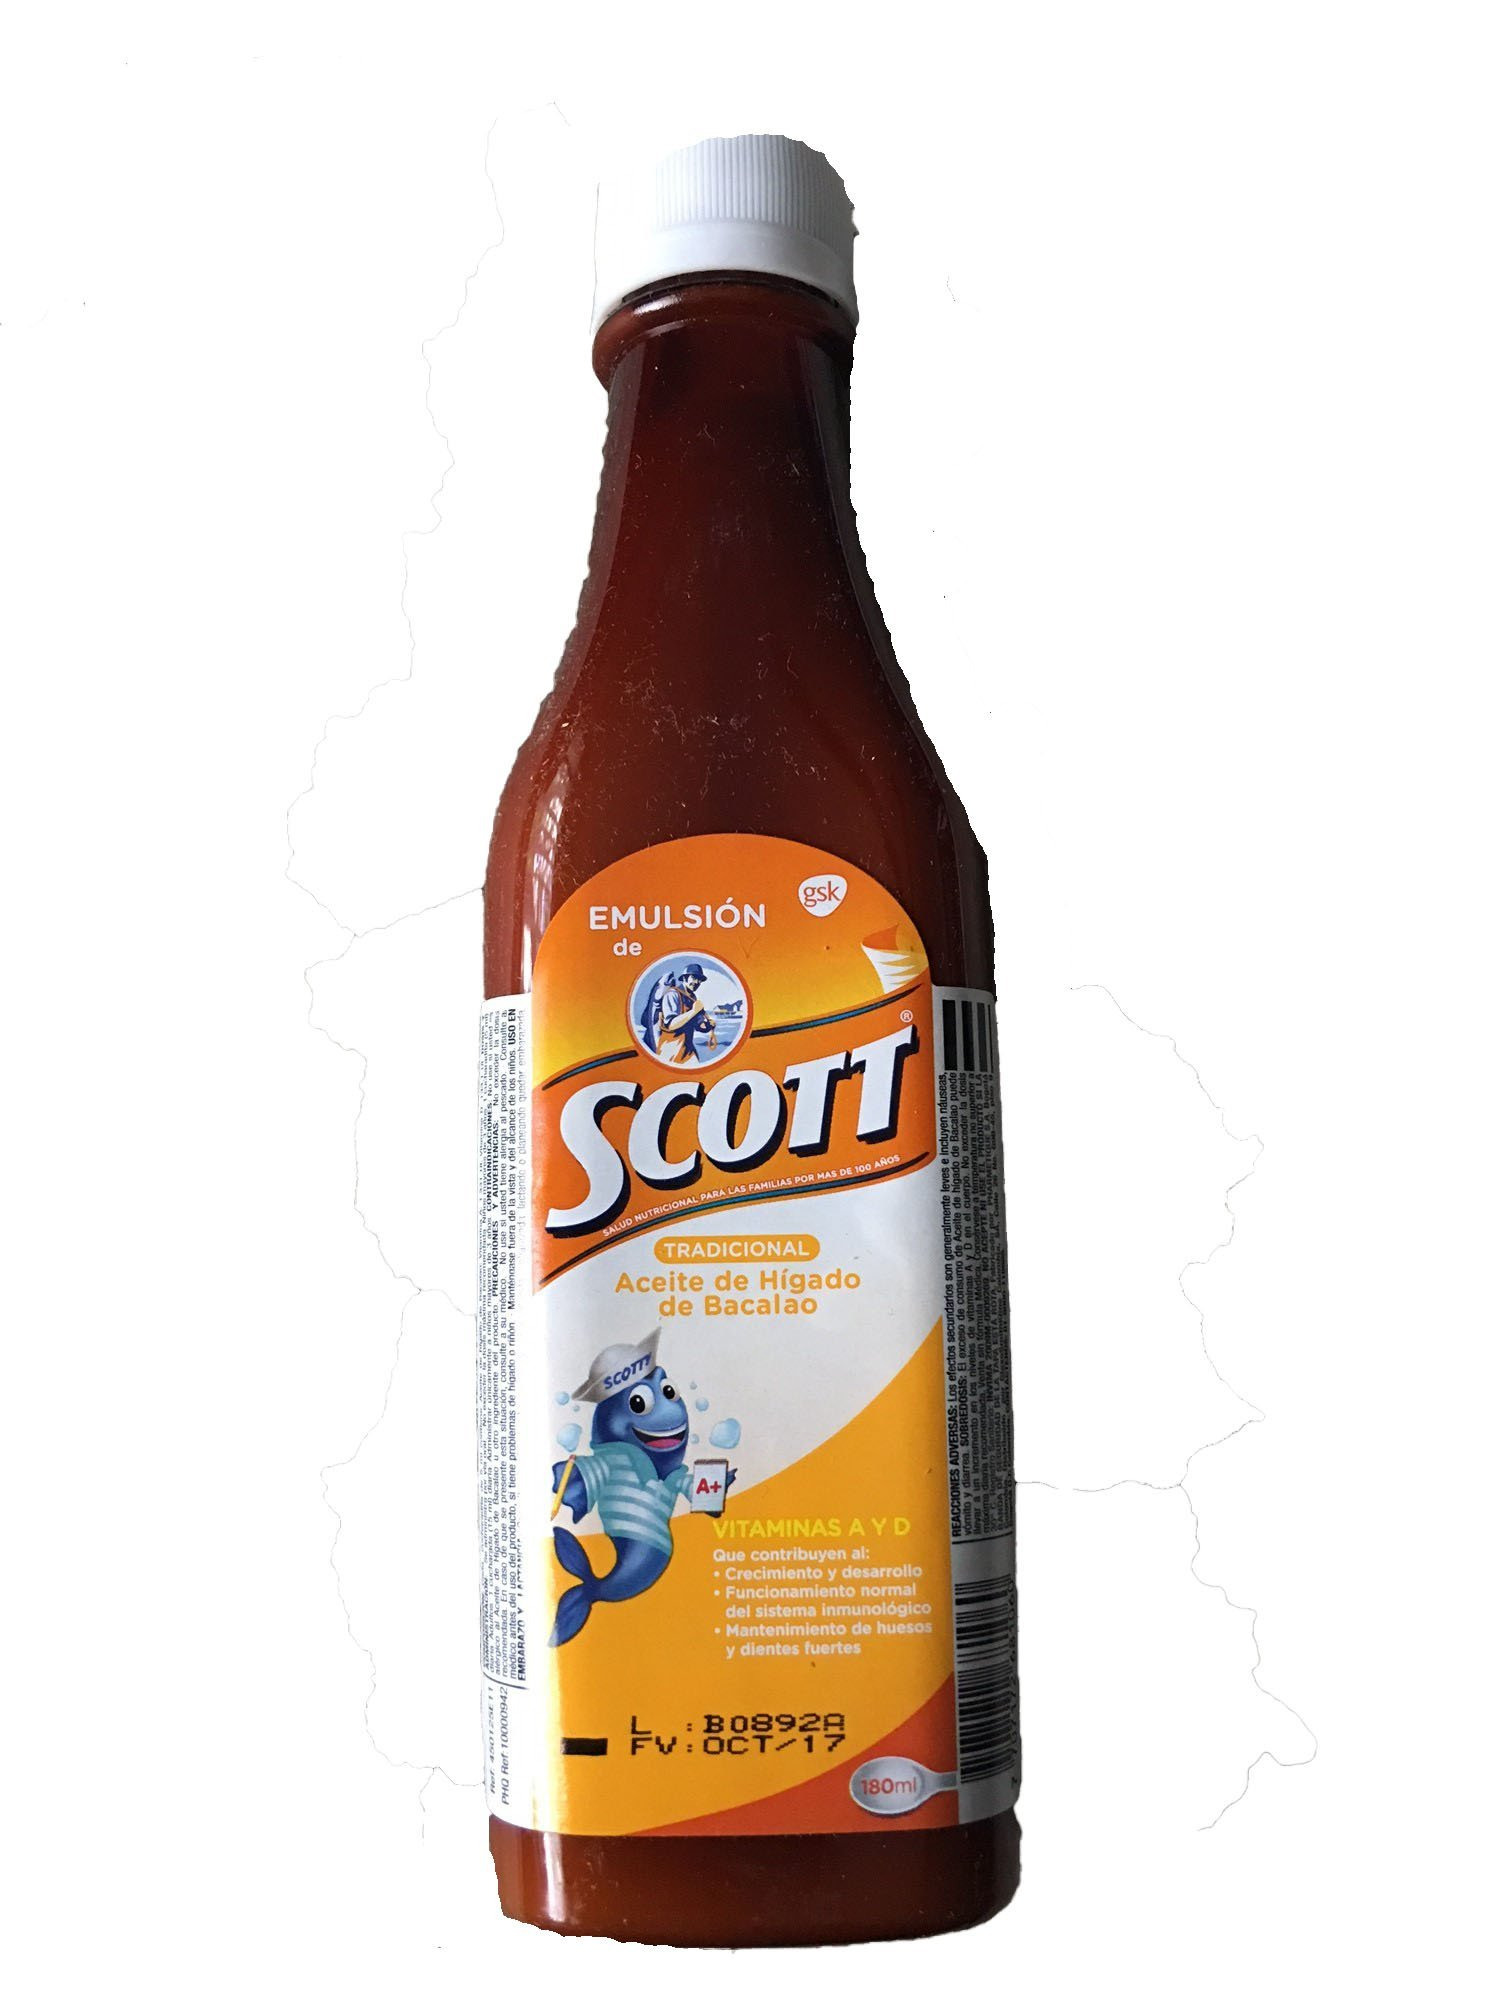 Emulsion de Scott (Sabor Tradicional) 180 Ml